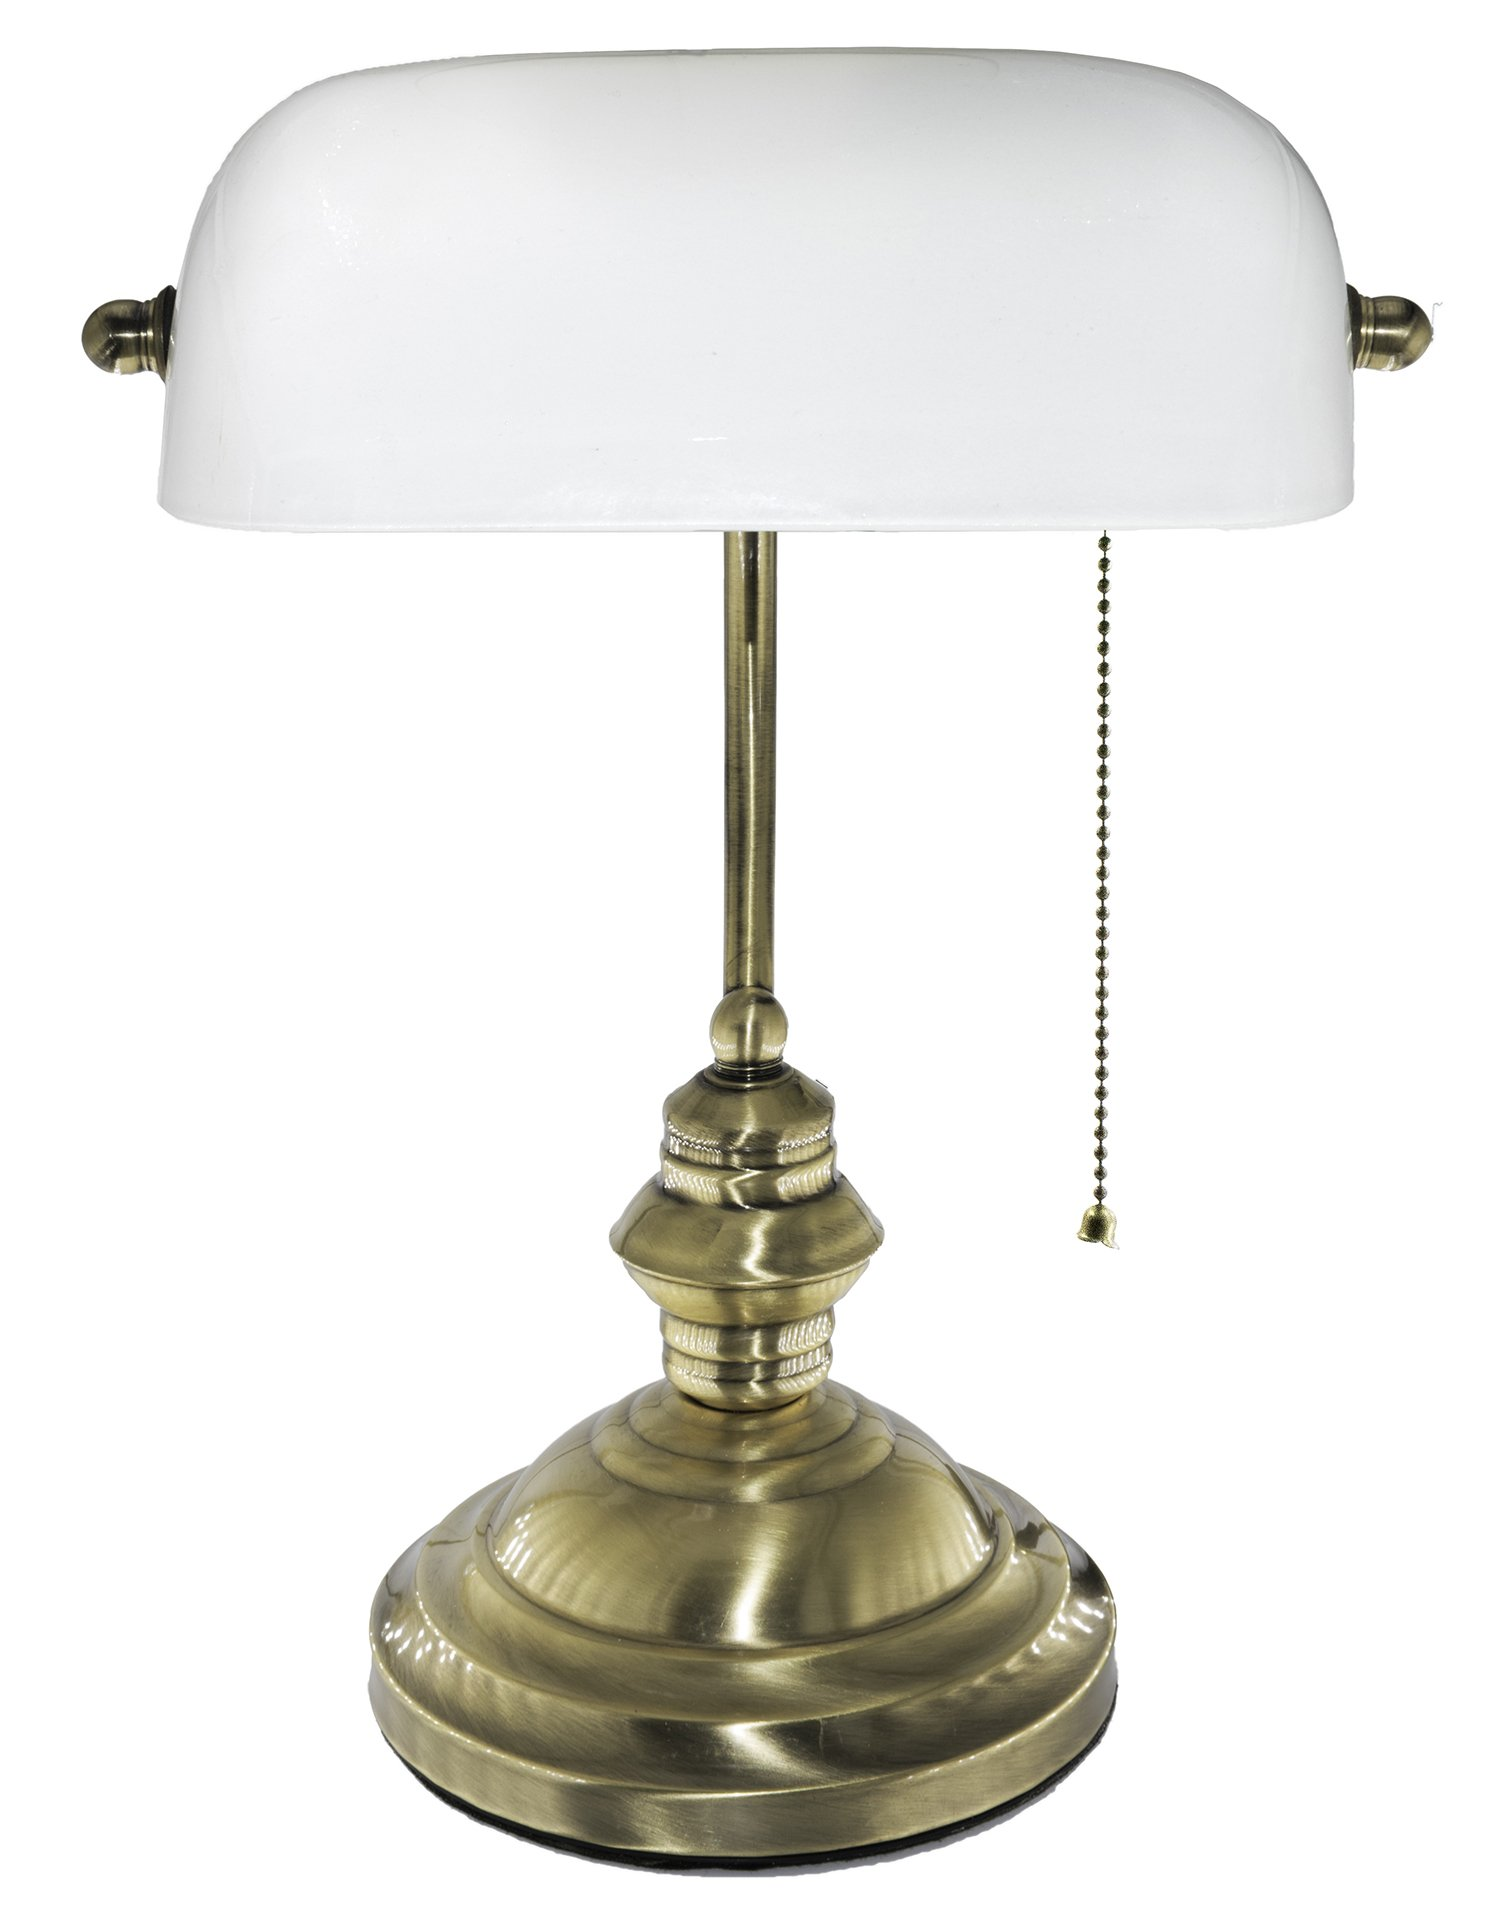 RUDY Bankers Desk Lamp 15''H, White Glass Shade with Brushed Gold Finish Brass Base by RUDY (Image #2)